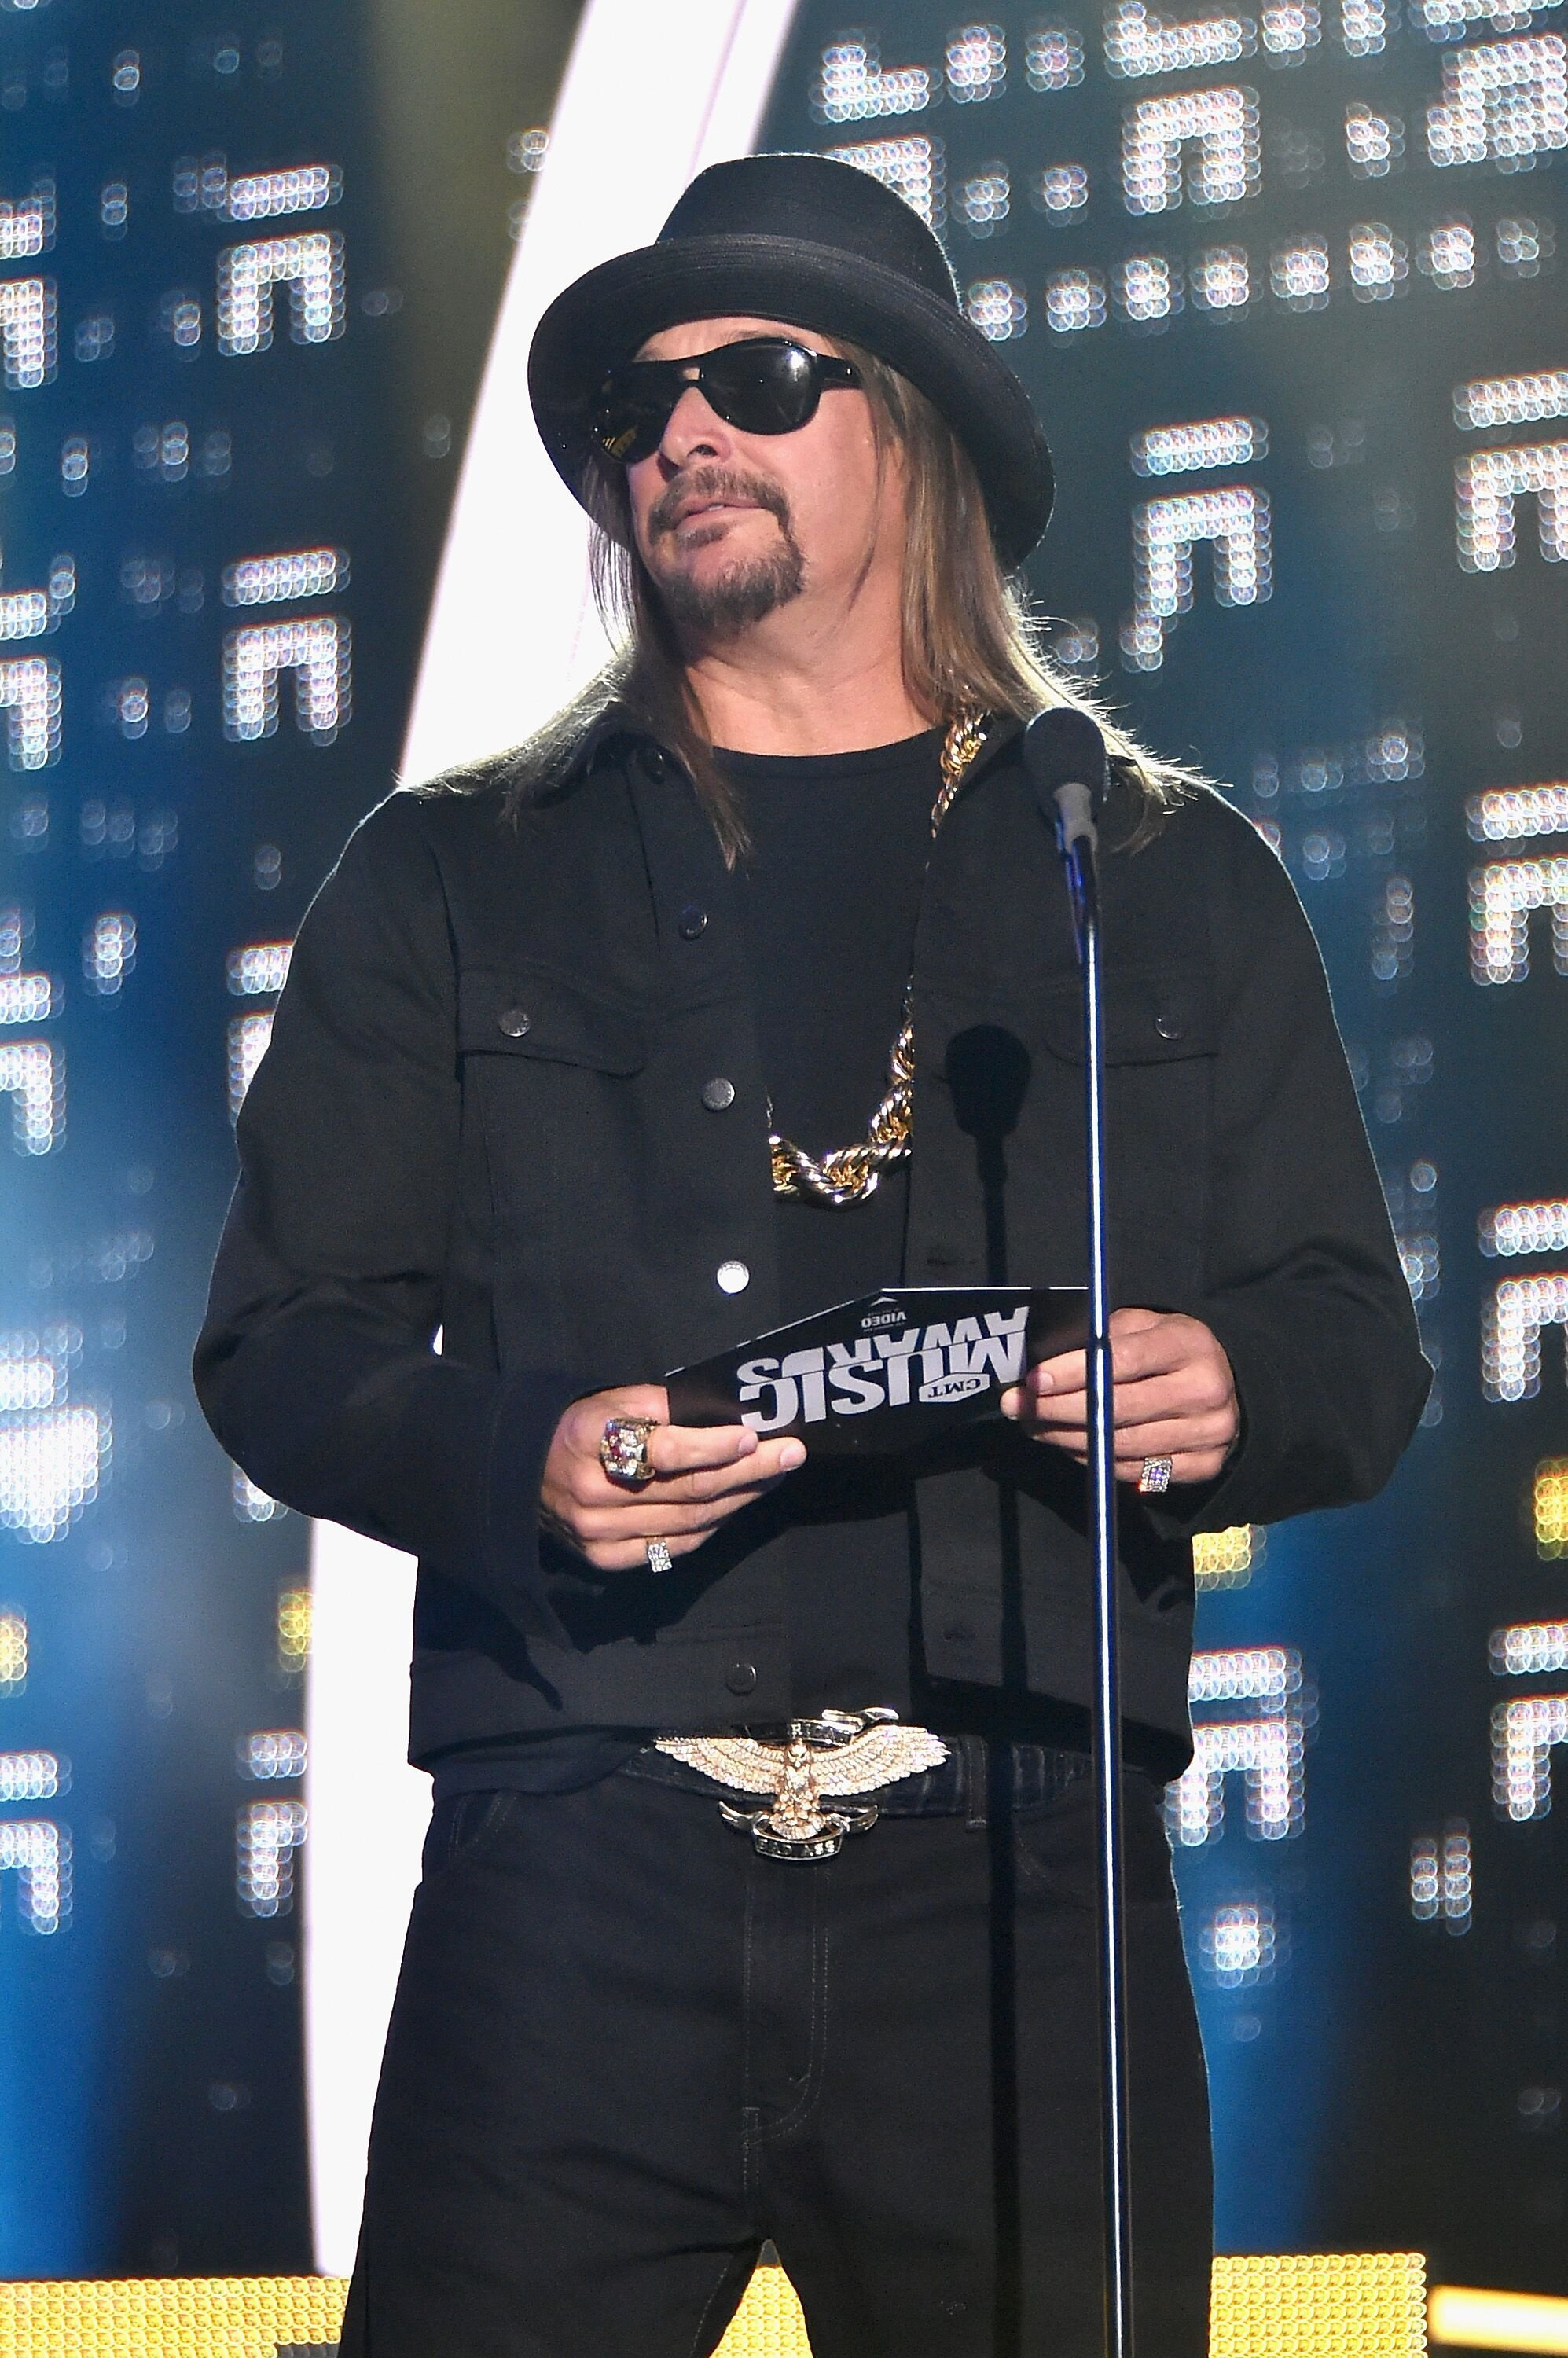 Kid Rock on stage at the Musica Awards. Image credit: Getty Images/GlobalImagesUkraine